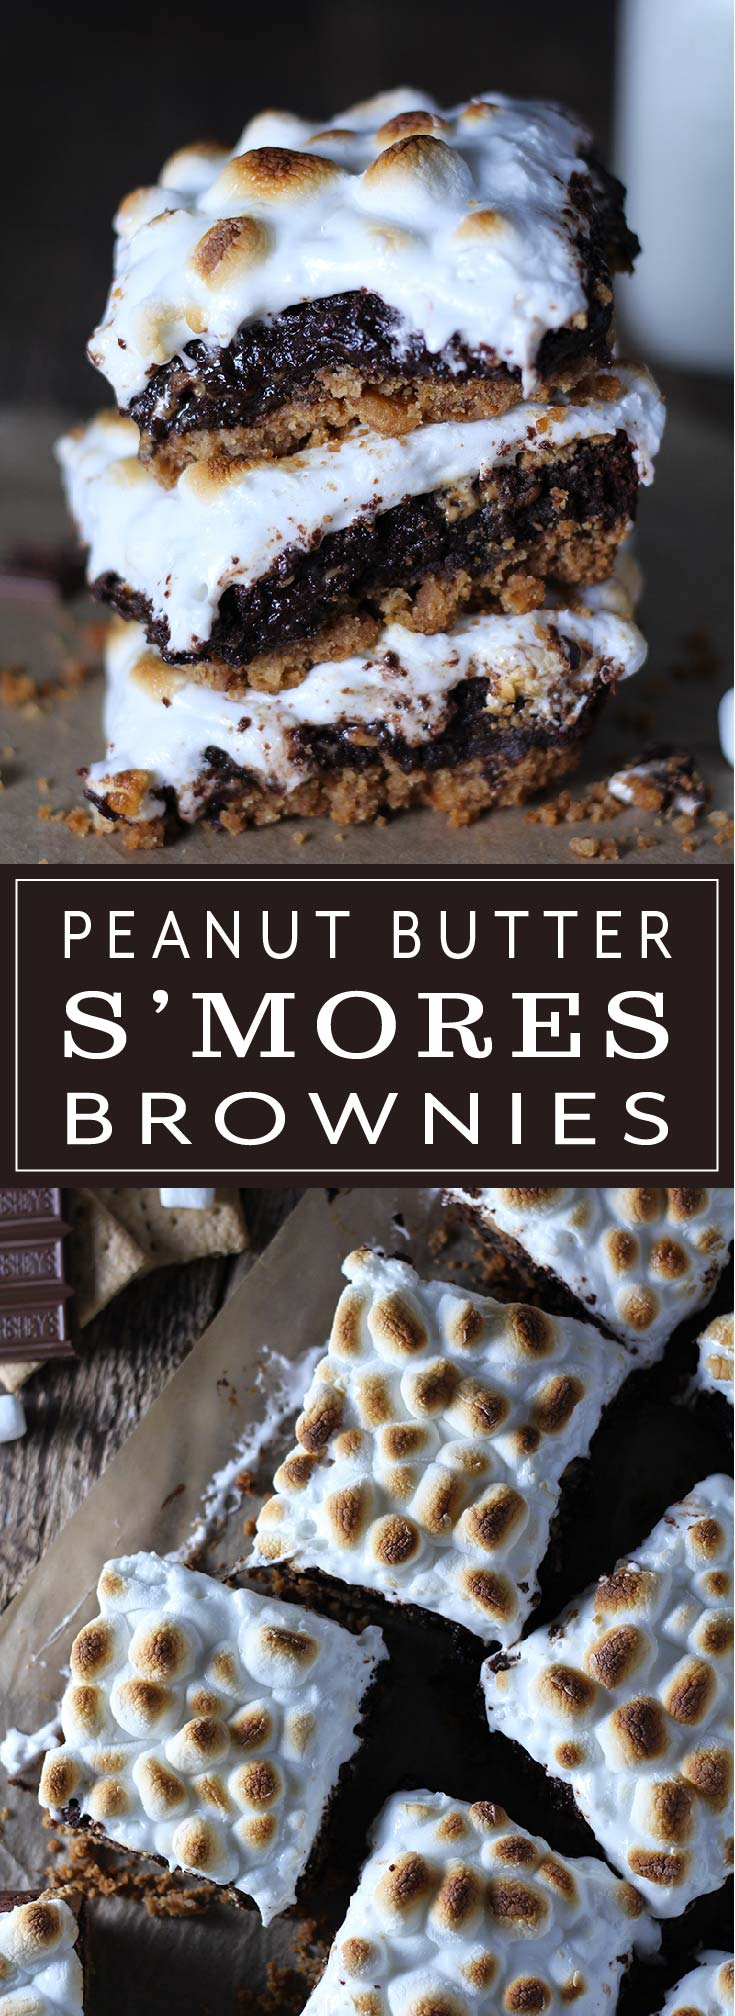 Graham cracker crust covered with fudgy brownies swirled with peanut butter and topped with melted marshmallows. Nothing says summer like s'mores over the campfire and these Peanut Butter S'mores Brownies take summer to the next level!